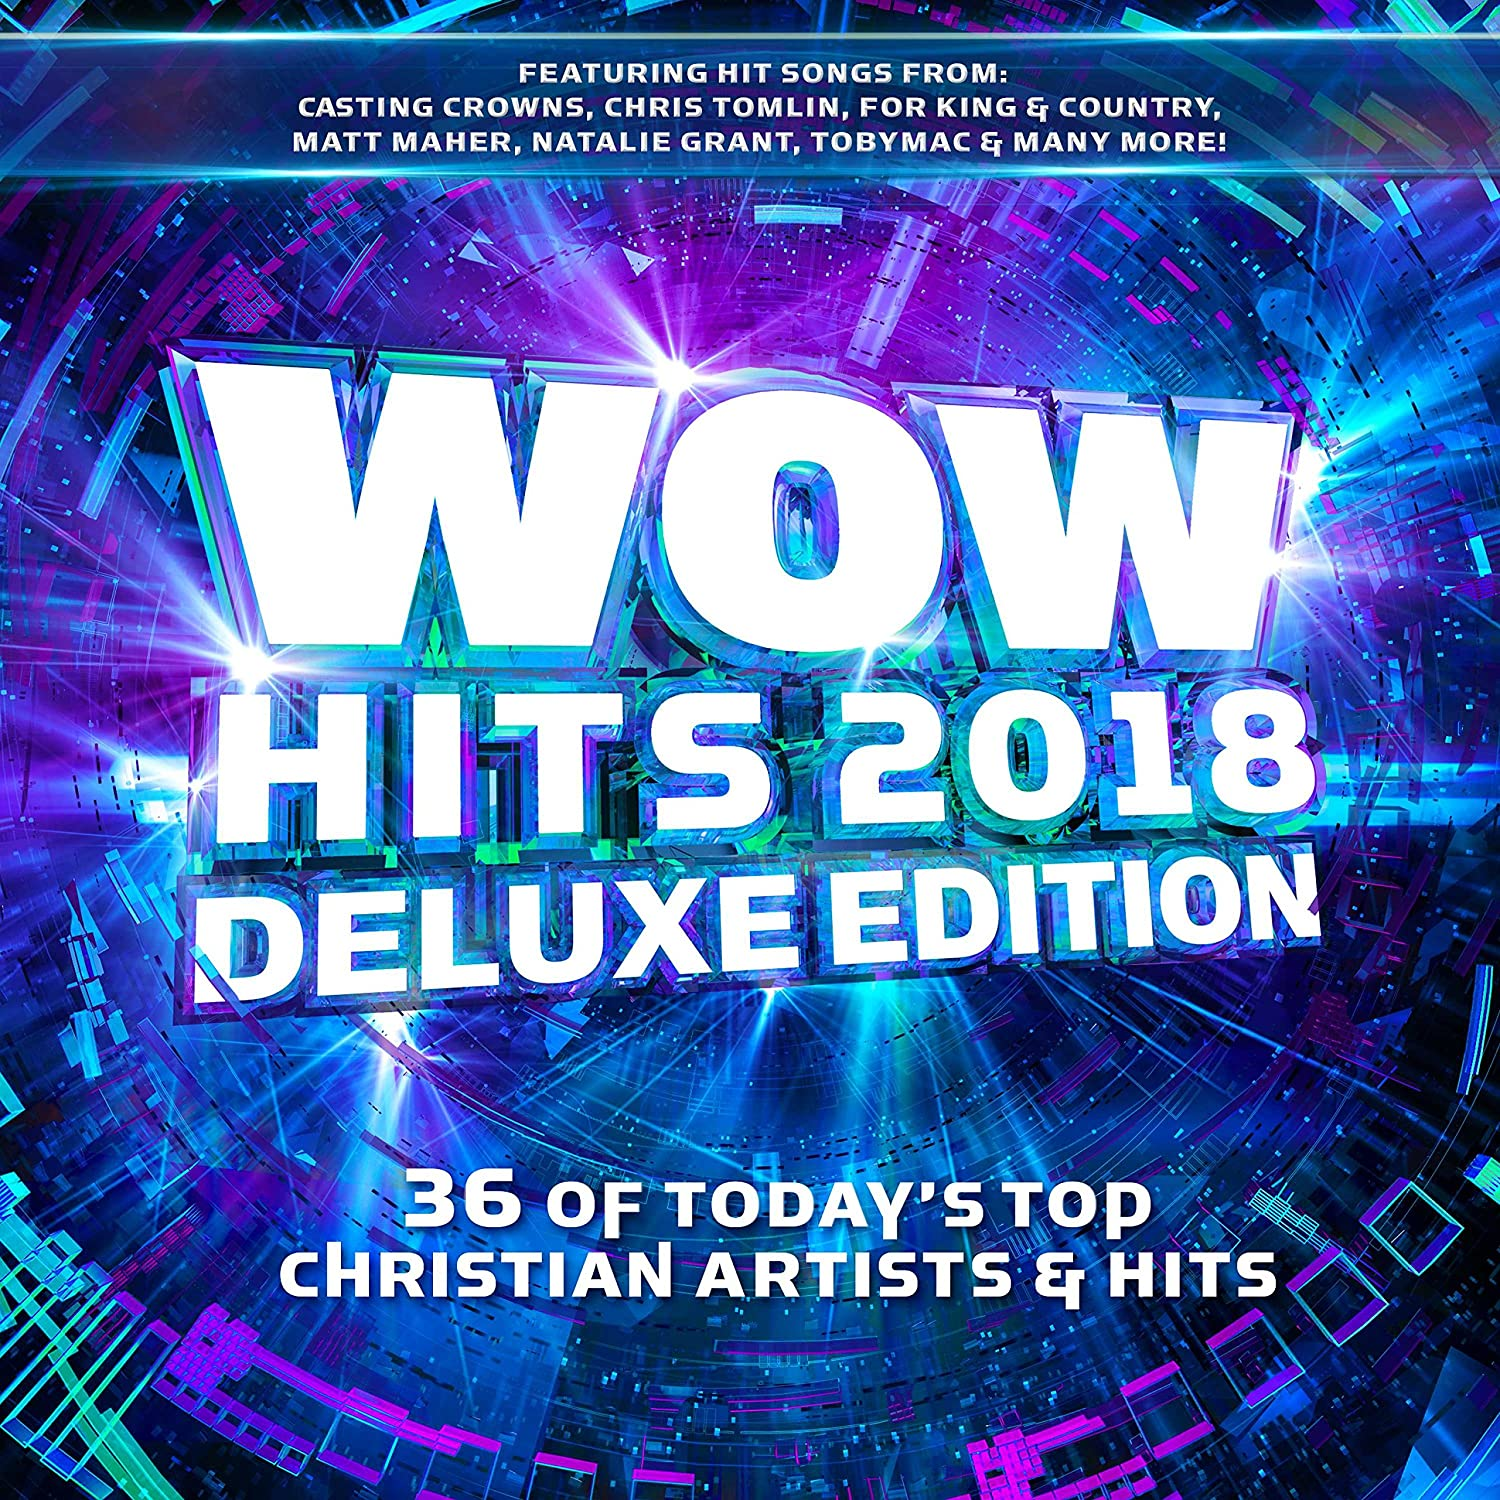 Wow Hits 2019 Whats Your Prediction Part 4 365 Days Of